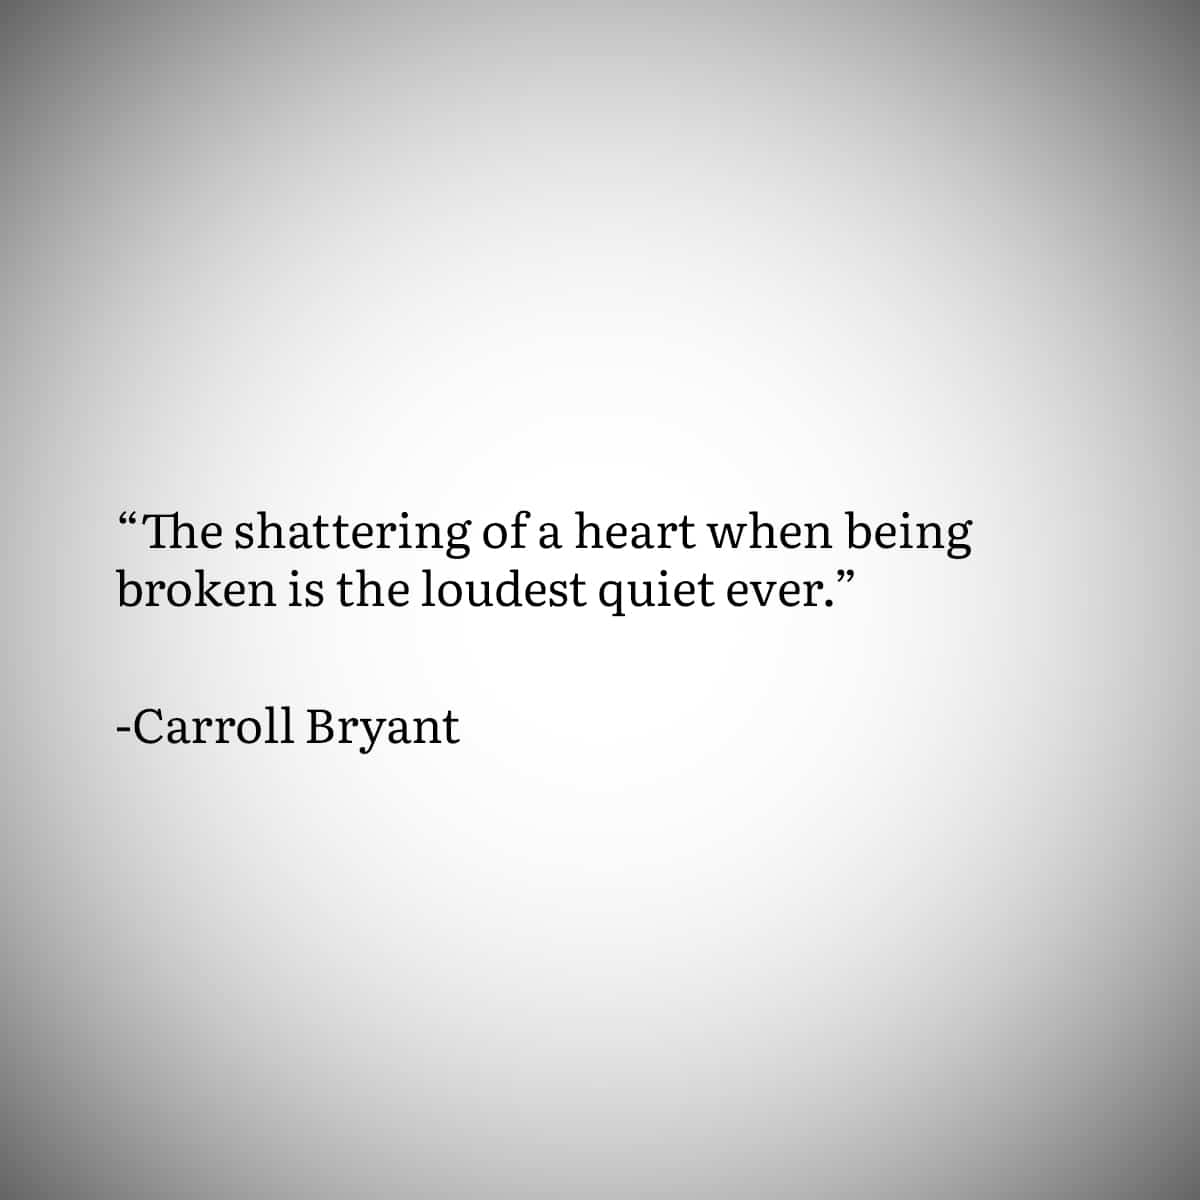 """Broken Heart Quote 3: """"The shattering of a heart when being broken is the loudest quiet ever."""" by Carroll Bryant"""